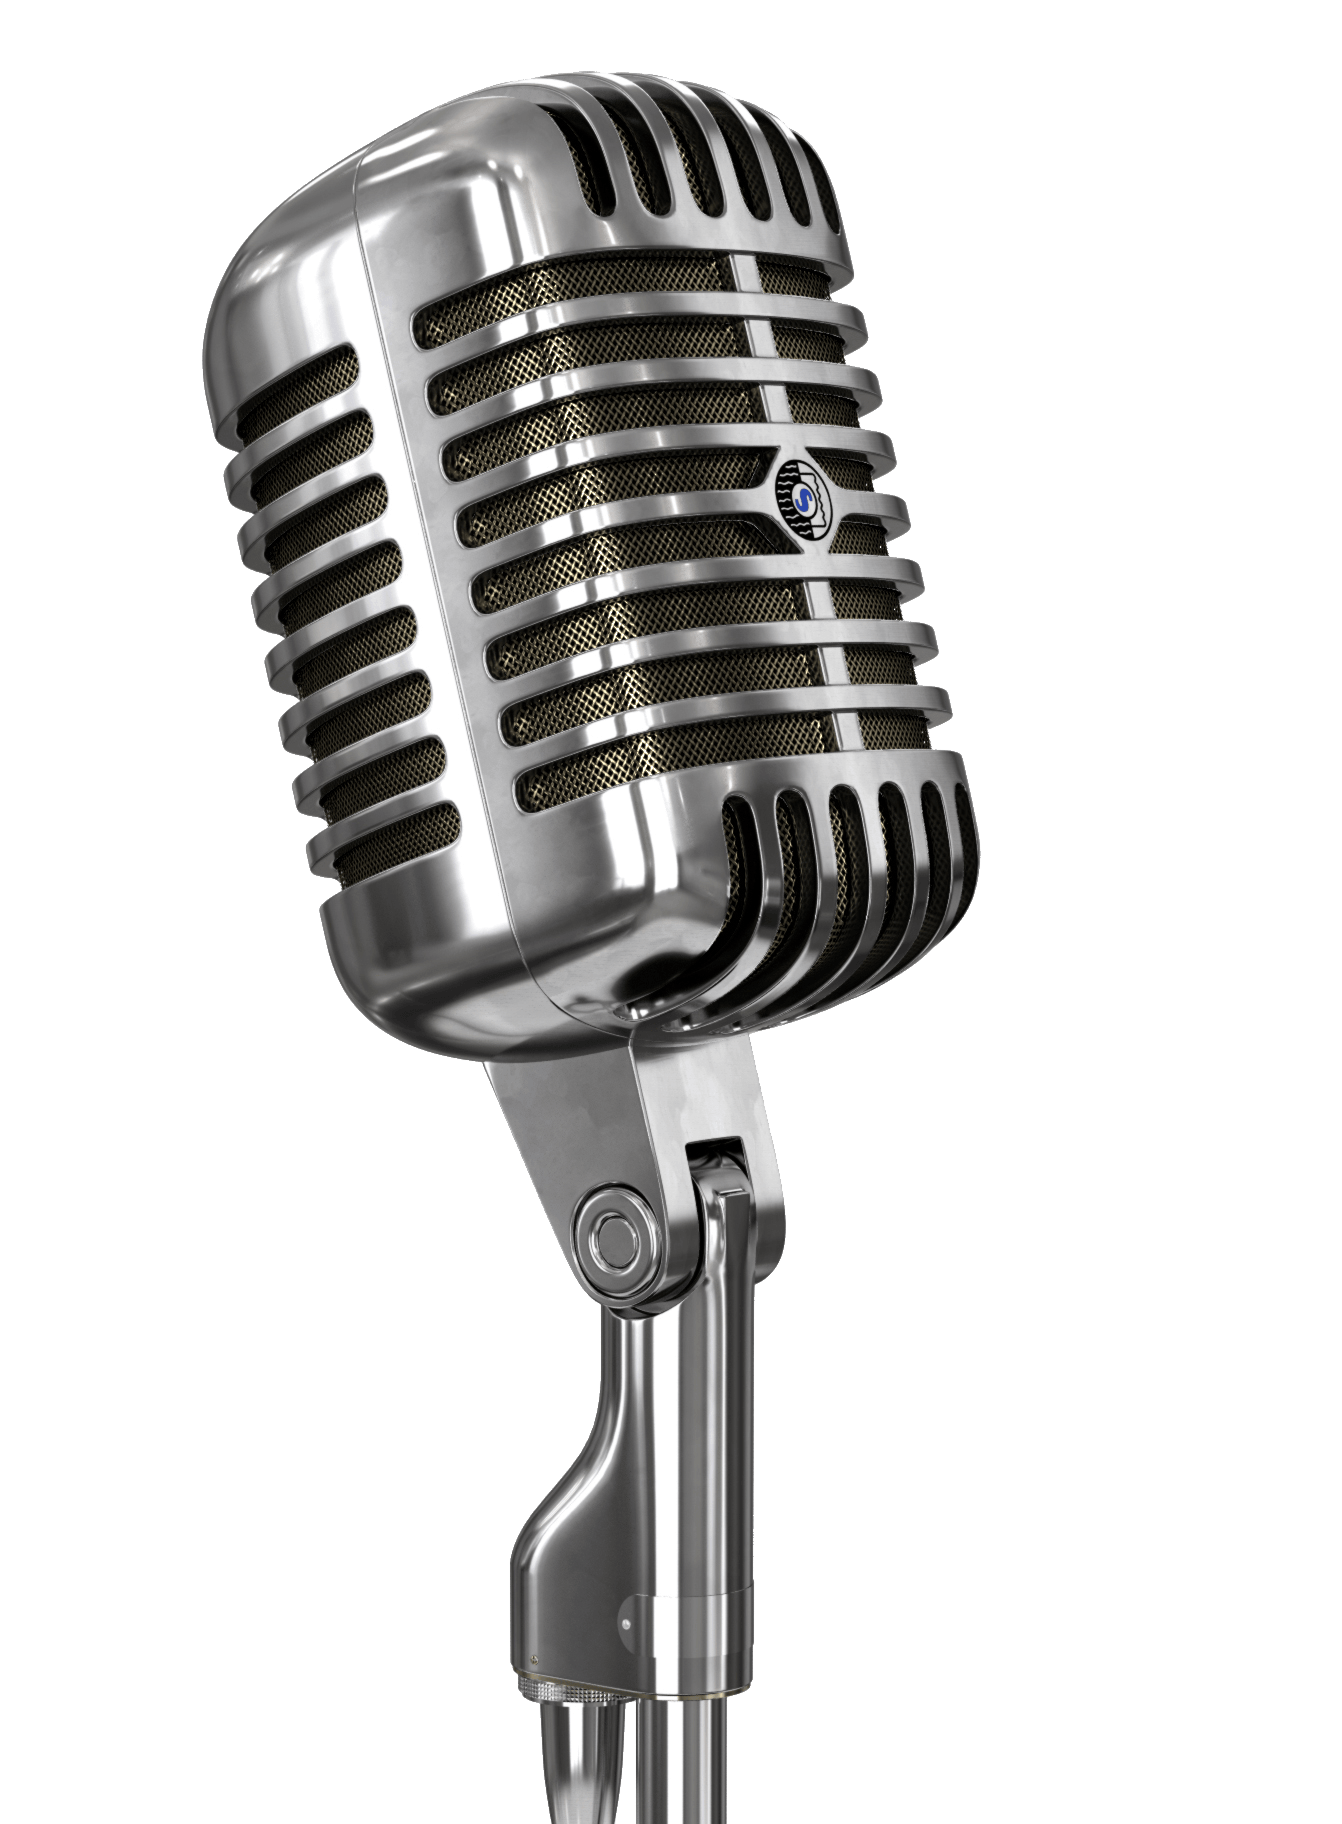 Microphone png image. Vintage and stand transparent